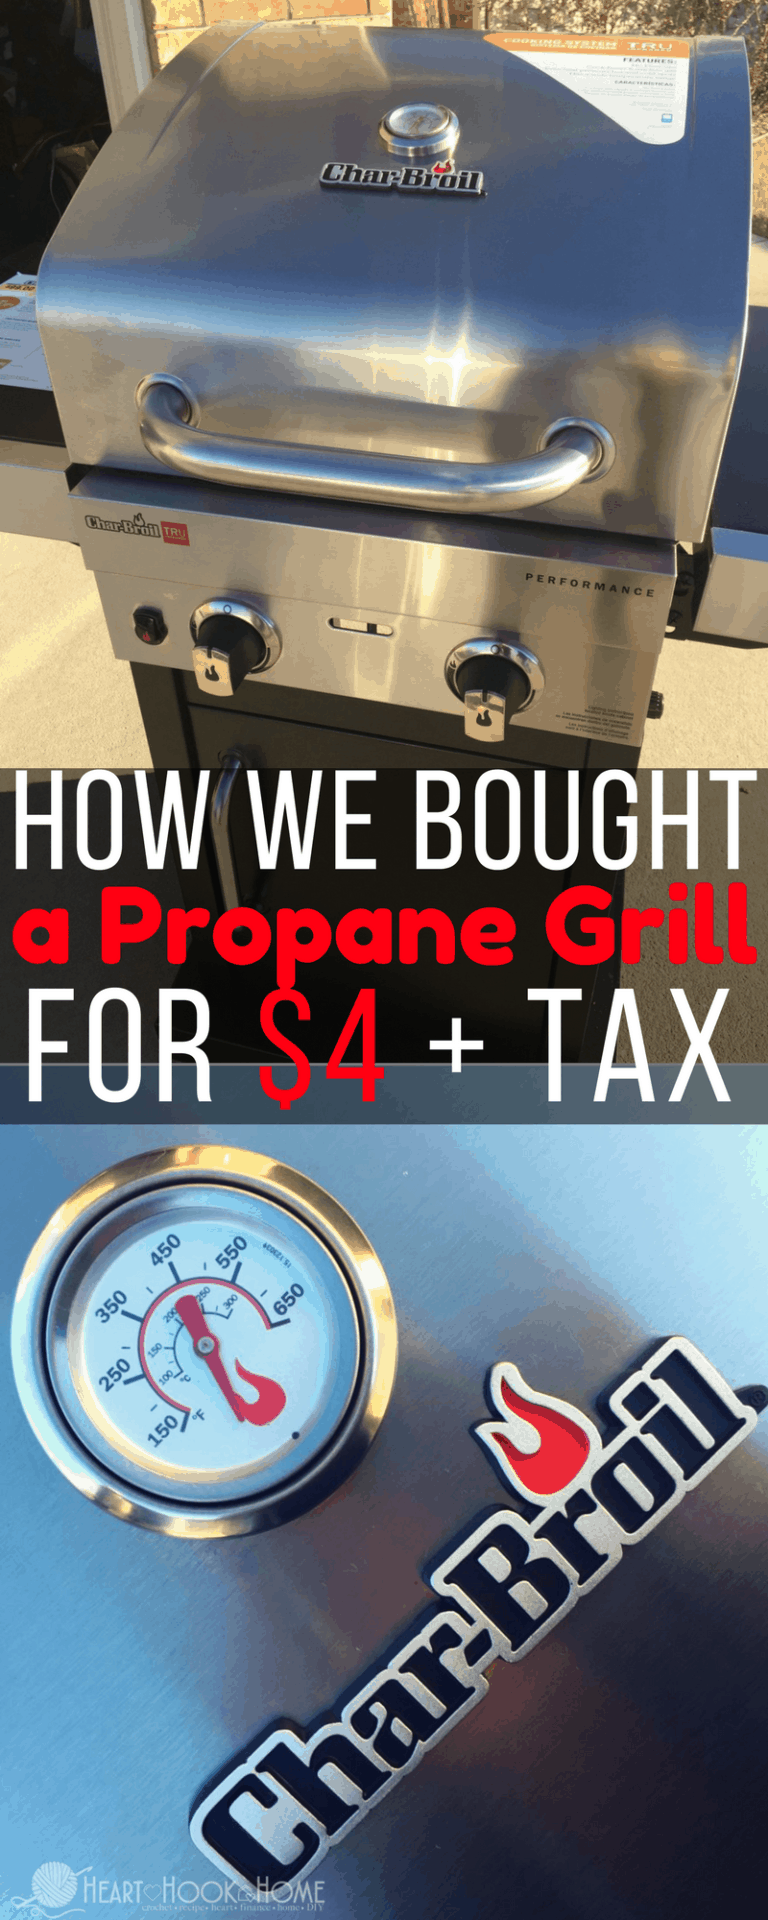 How We Bought a Propane Grill for Just $4 + Tax